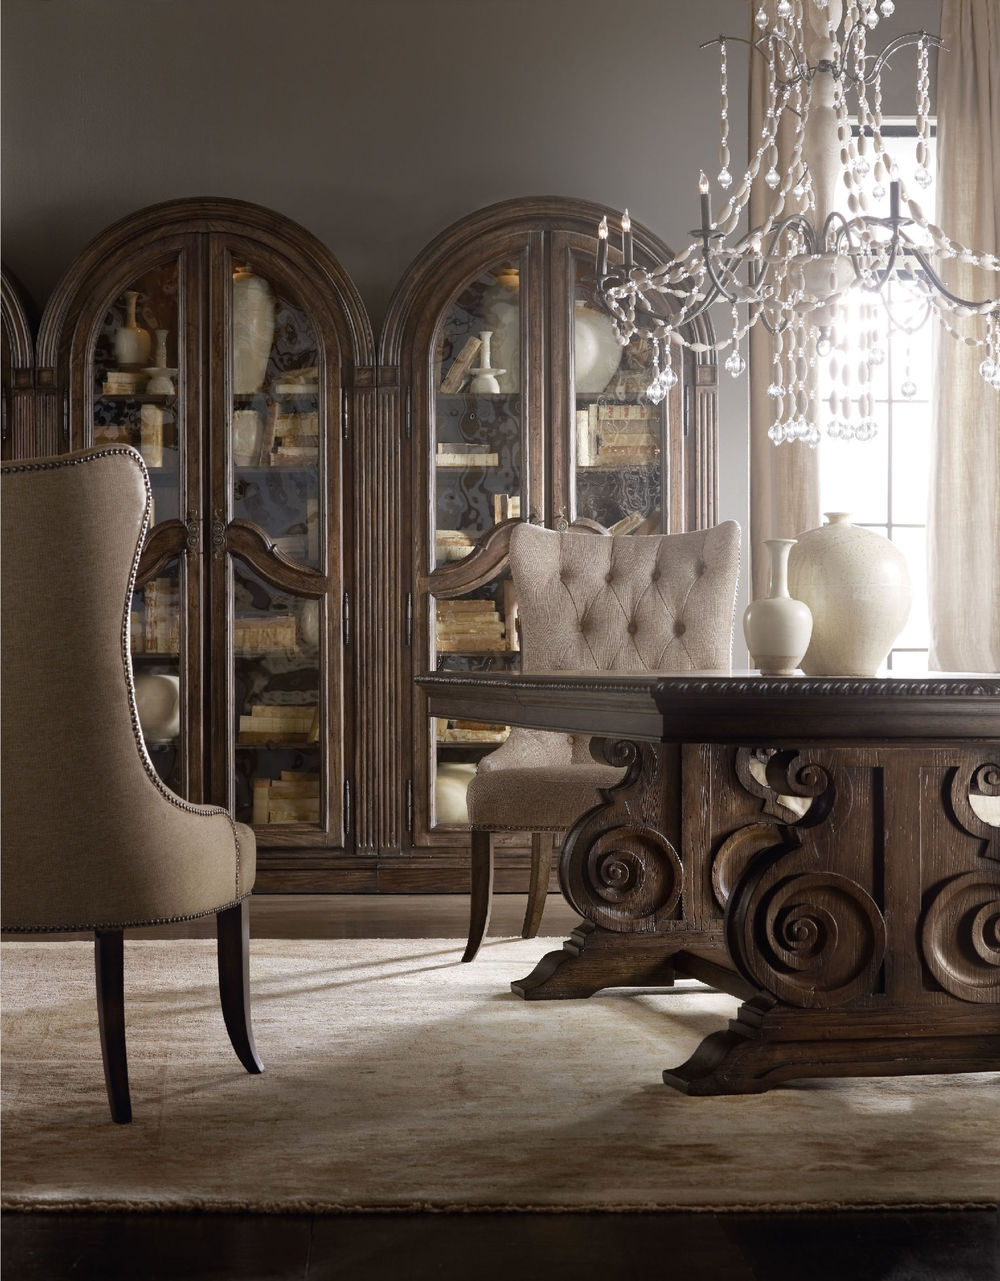 Hooker Furniture - Rhapsody Tufted Dining Chair